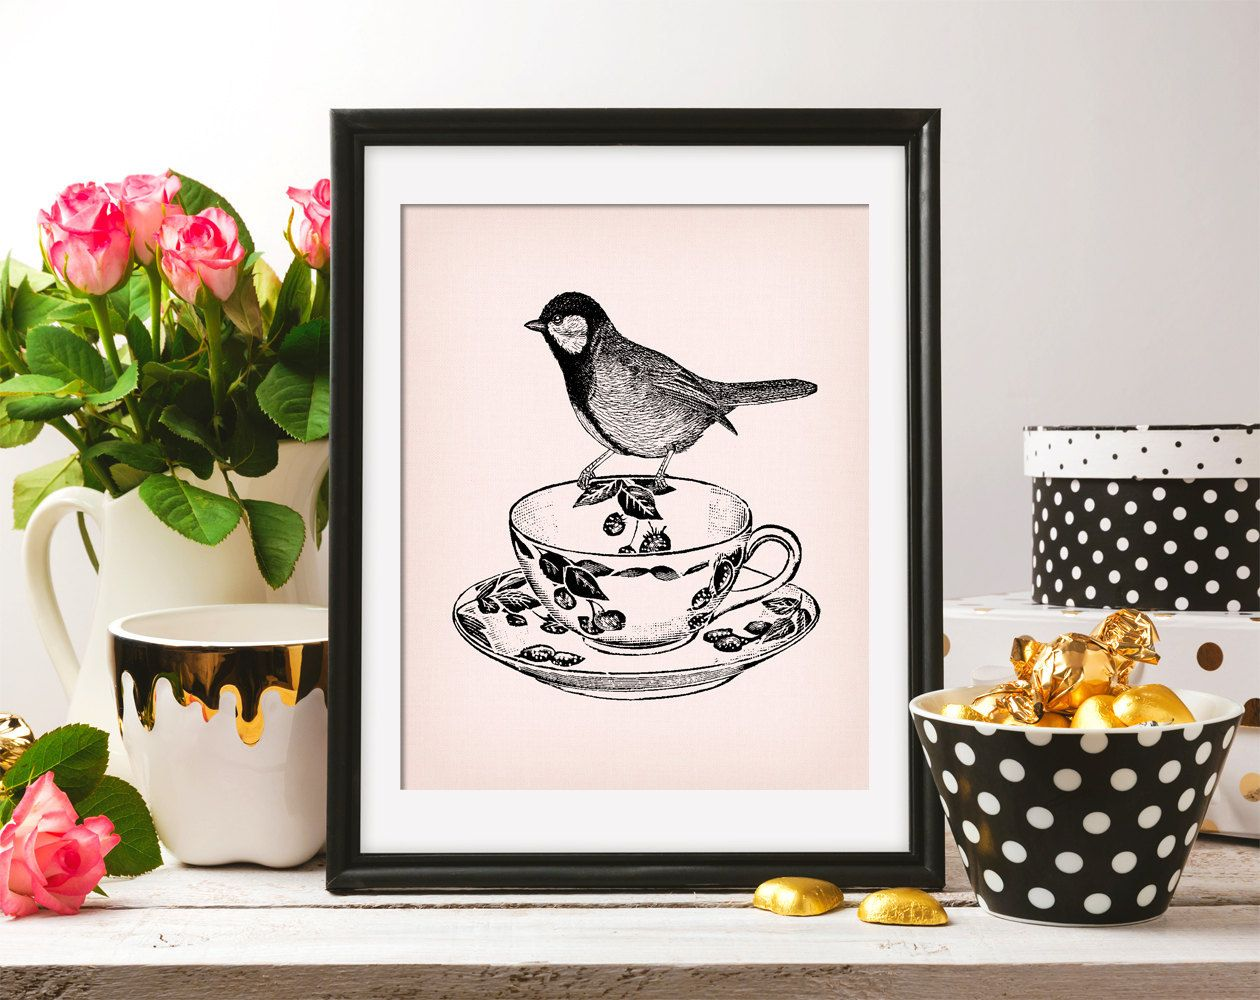 Titmouse Chickadee Bird Tea cup 8x10 On the Pink Background & Titmouse ClipArt Retro drawing Printable Image DIGITAL INSTANT DOWNLOAD HQ300 by ZikkiArt on Etsy